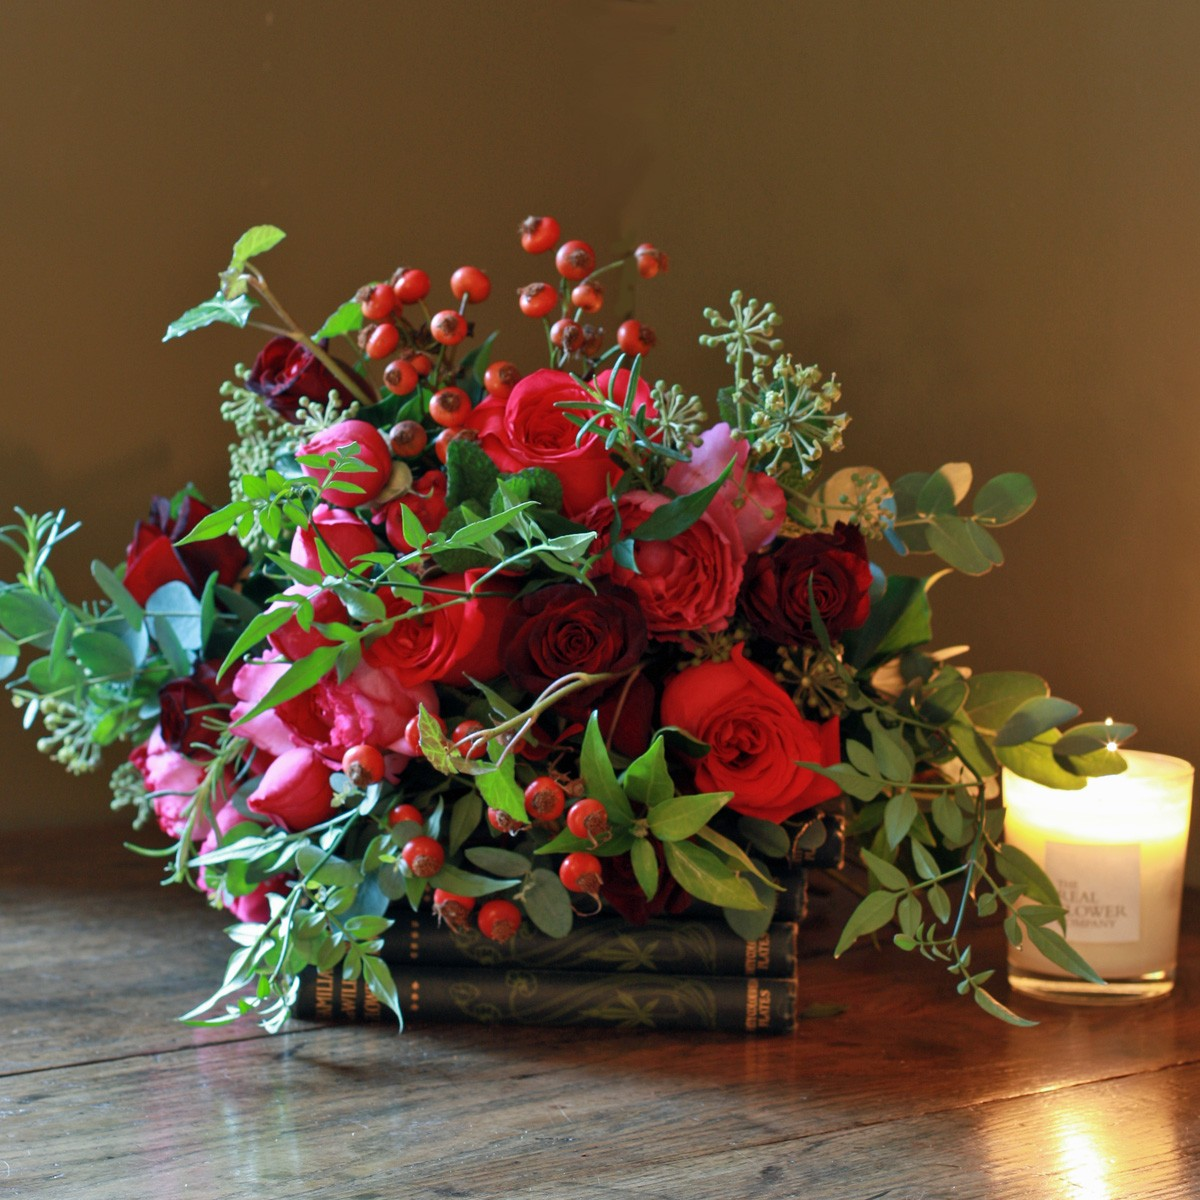 Festive Florals Seasonal Flower Arrangements For